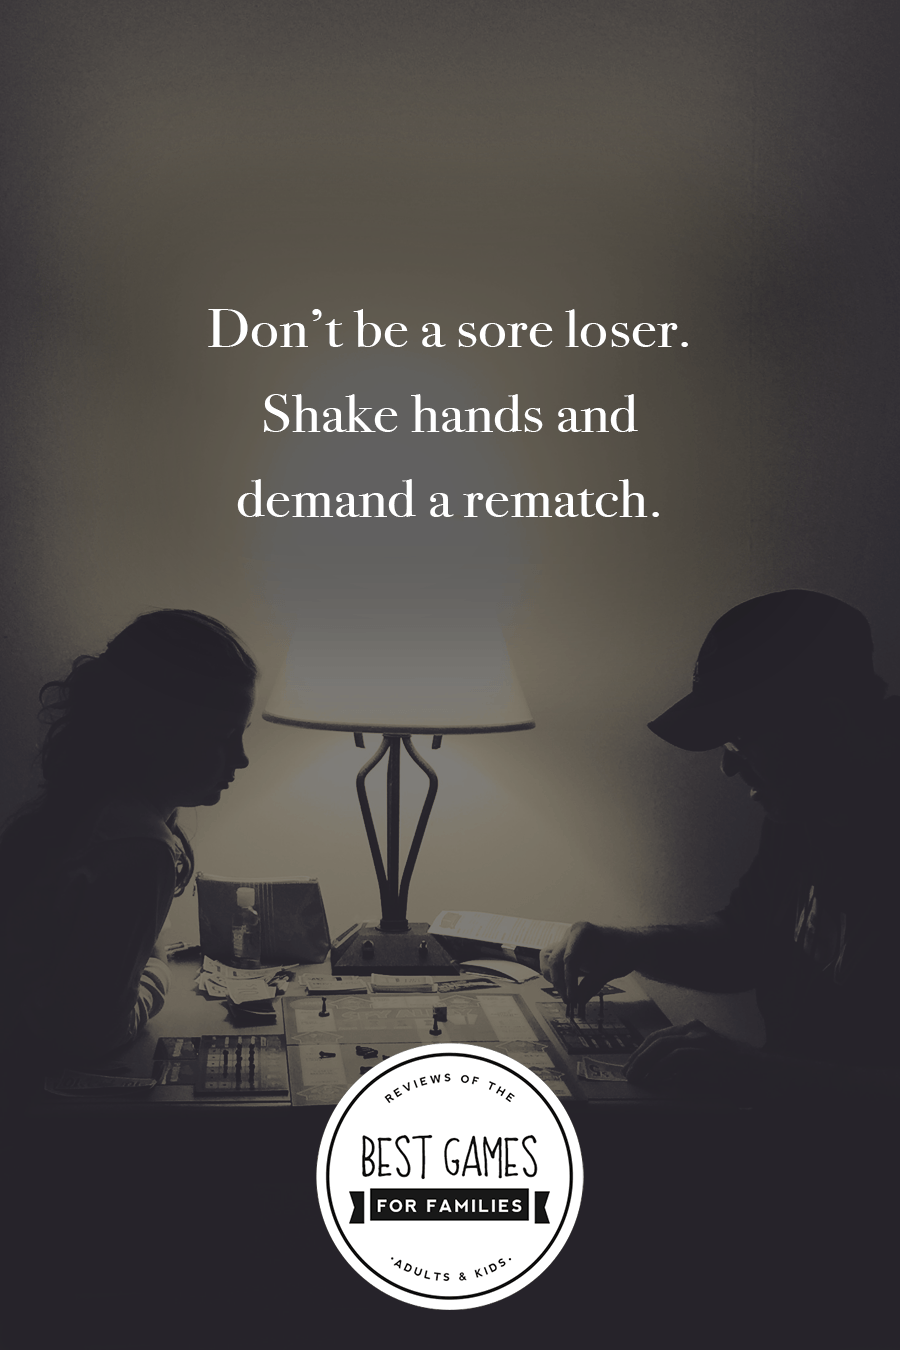 Don't be a sore loser. Shake hands and demand a rematch. #quote #gamenight #familygame night *Loving this Best Games For Families website!